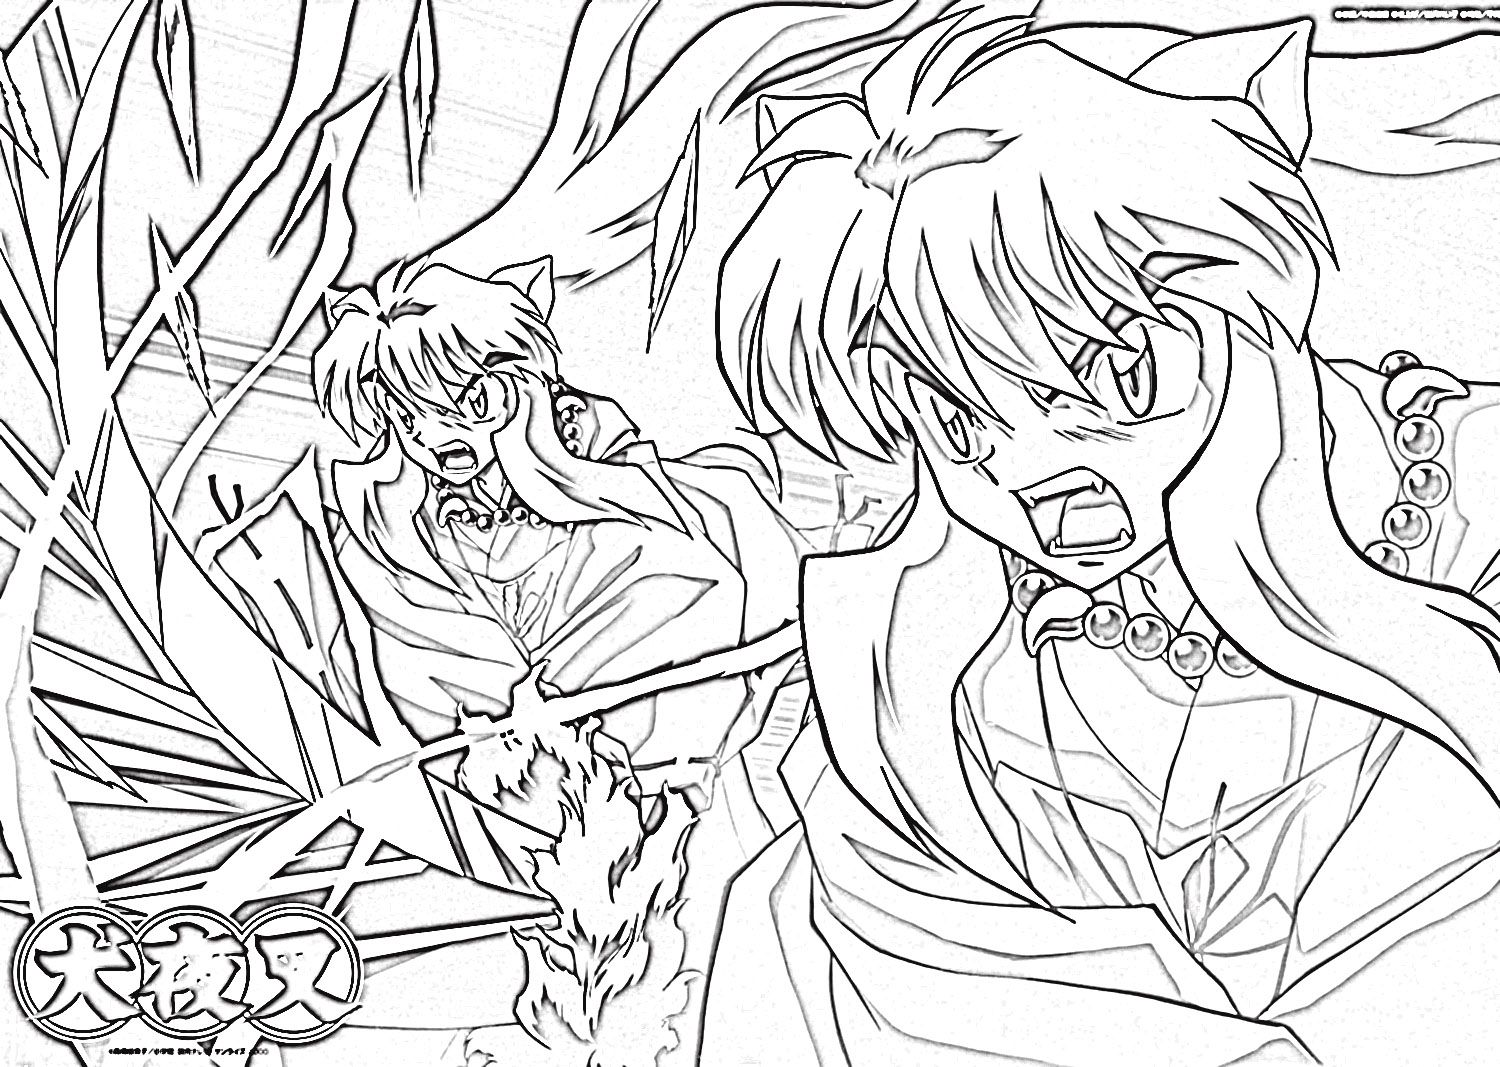 Inuyasha Coloring Pages 3 | Zeichnen